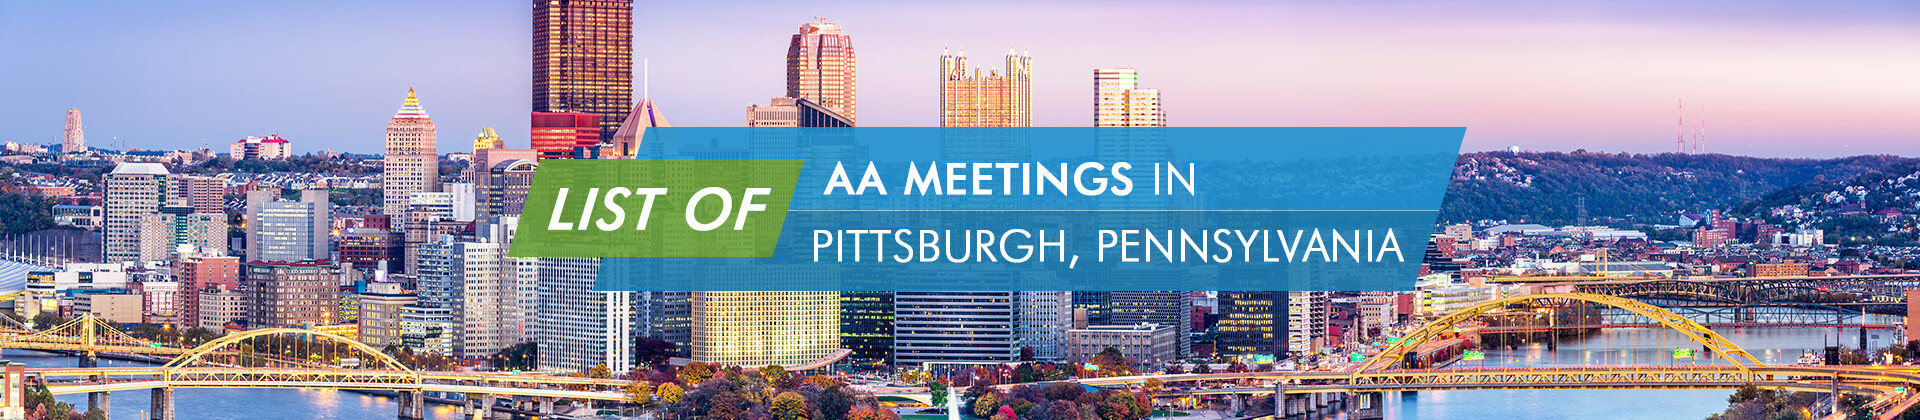 AA Meetings Pittsburgh Pennsylvania